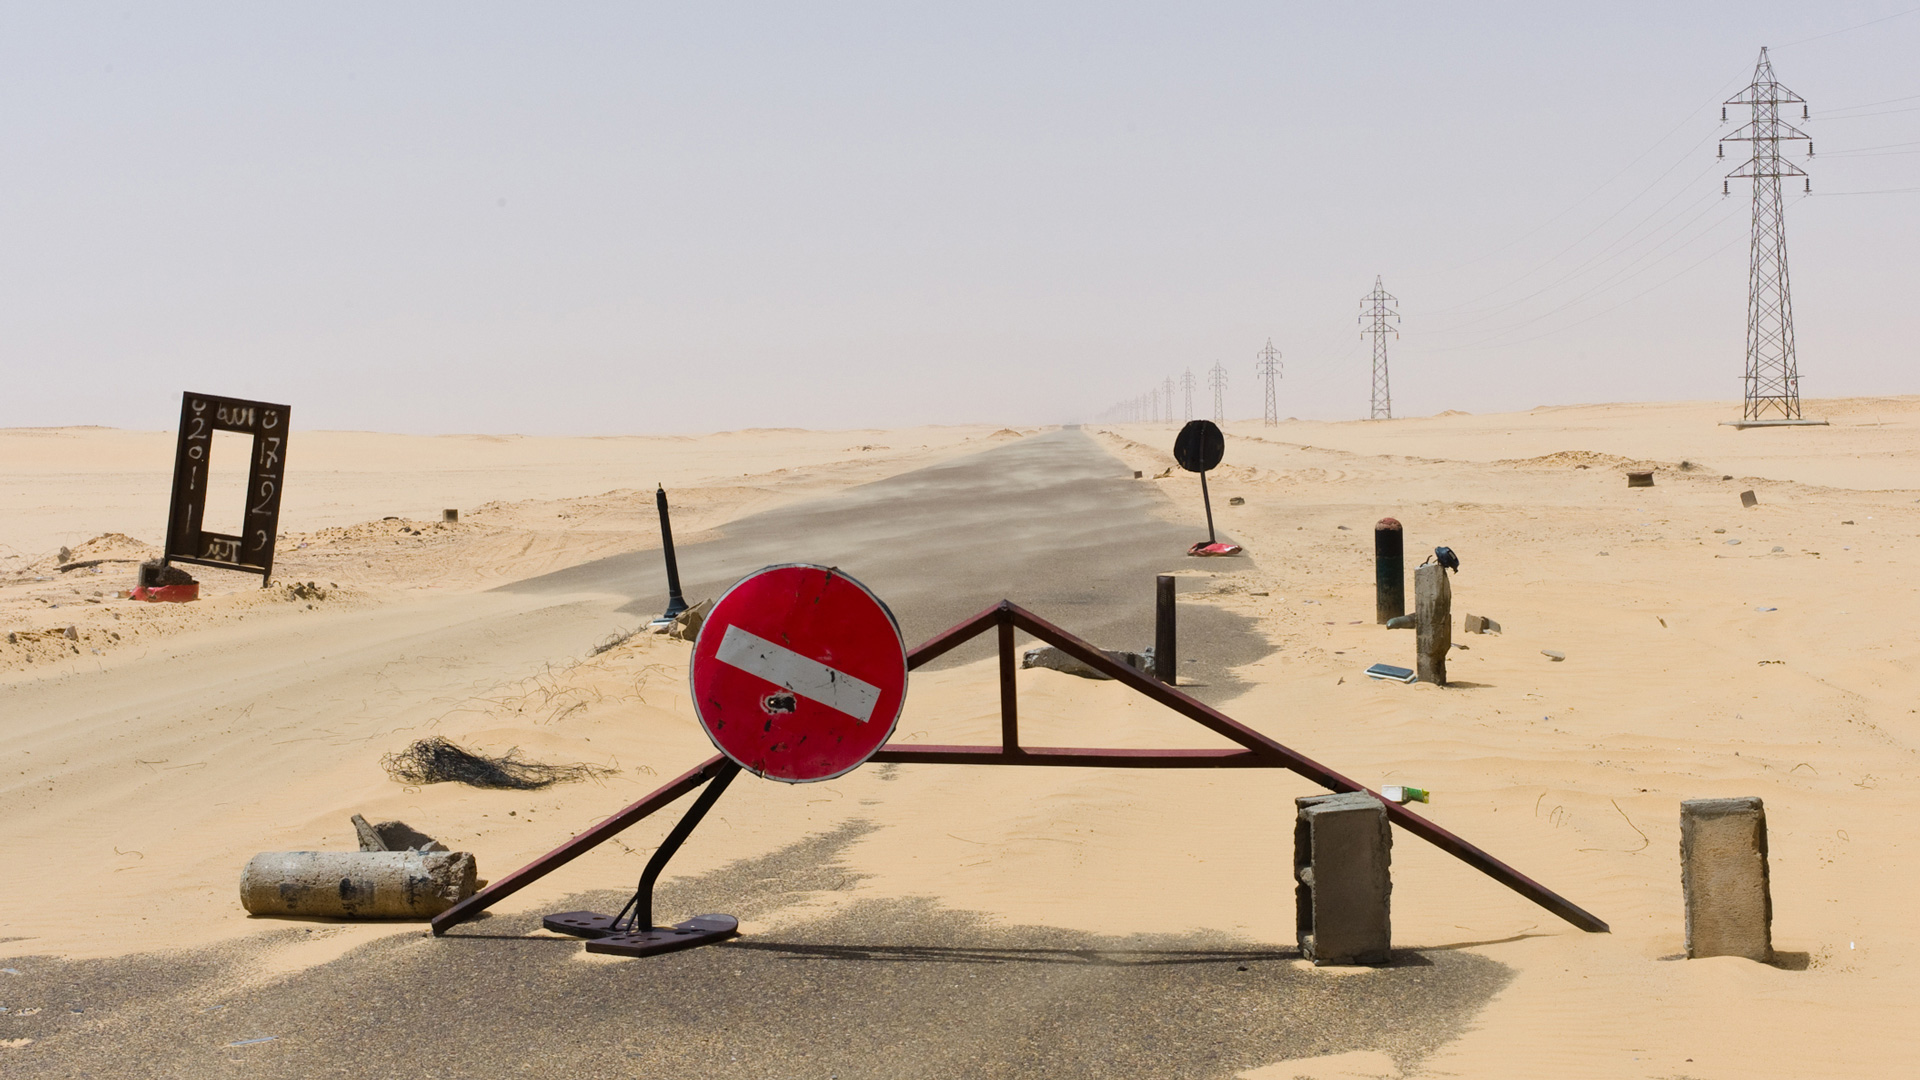 A checkpoint in the desert